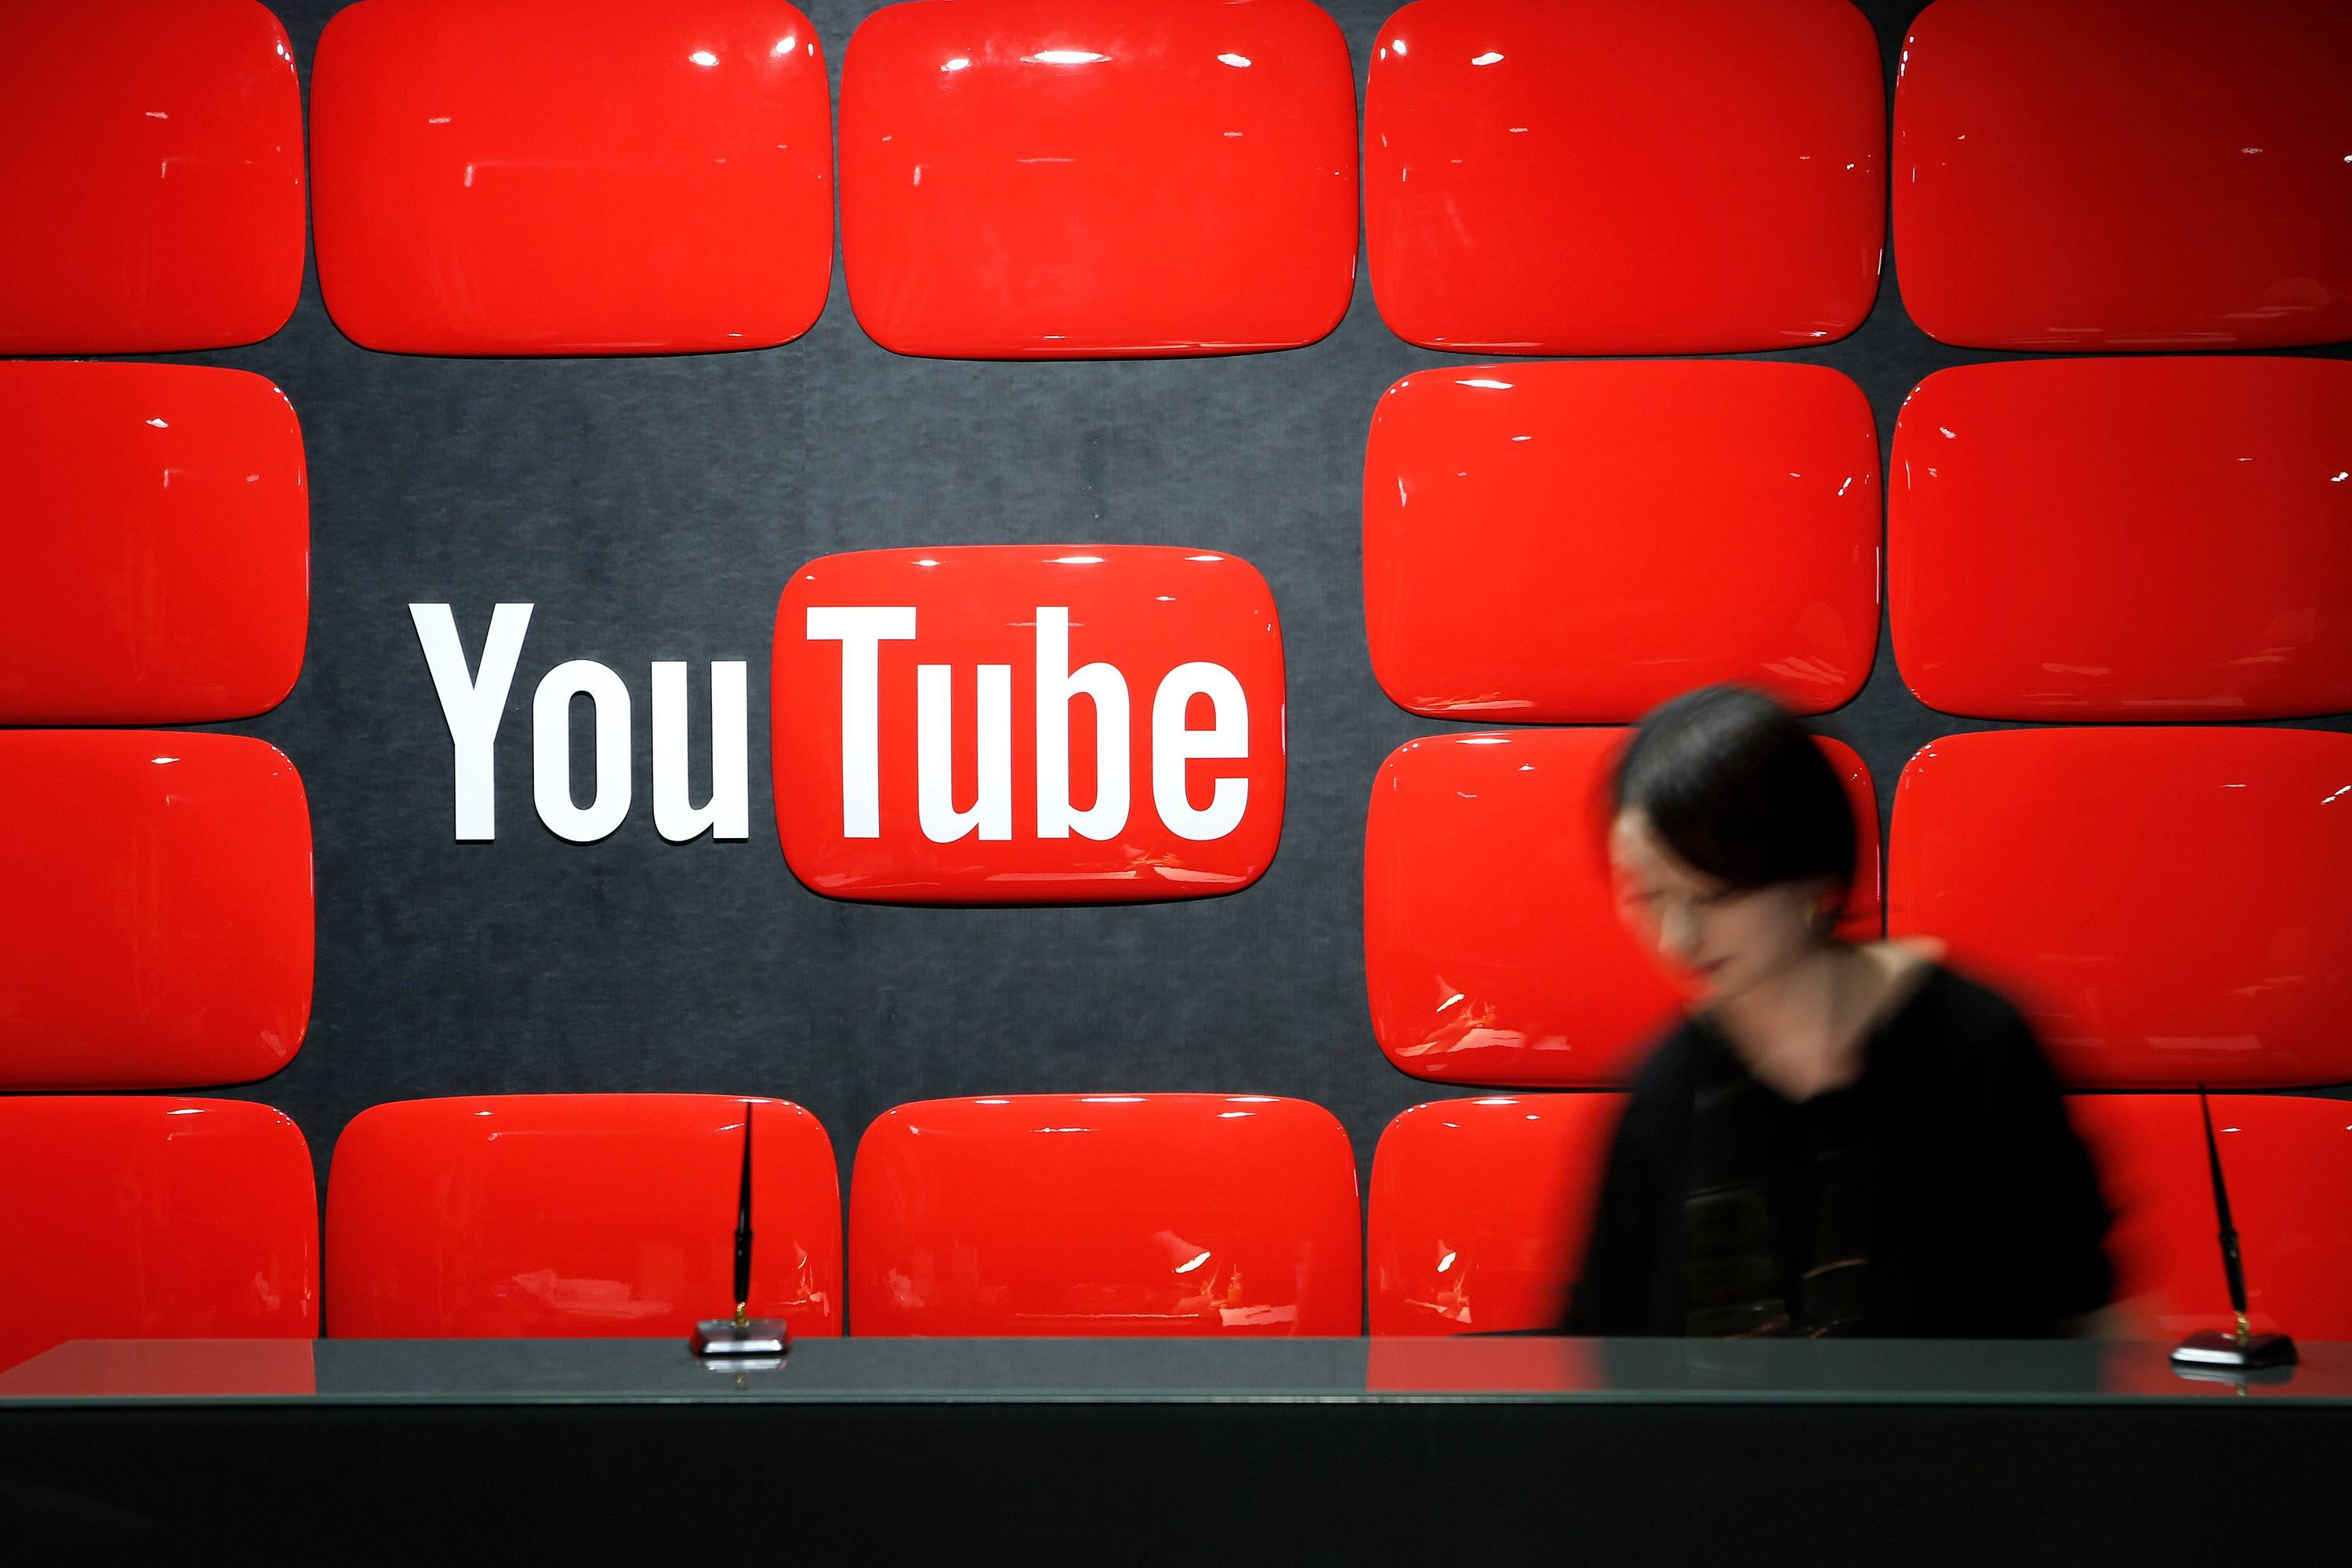 A group of outraged YouTube creators are accusing the company of censoring them. The controversy springs from confusion over YouTube's long-standing policy of disabling ads on videos that could draw advertiser complaints.